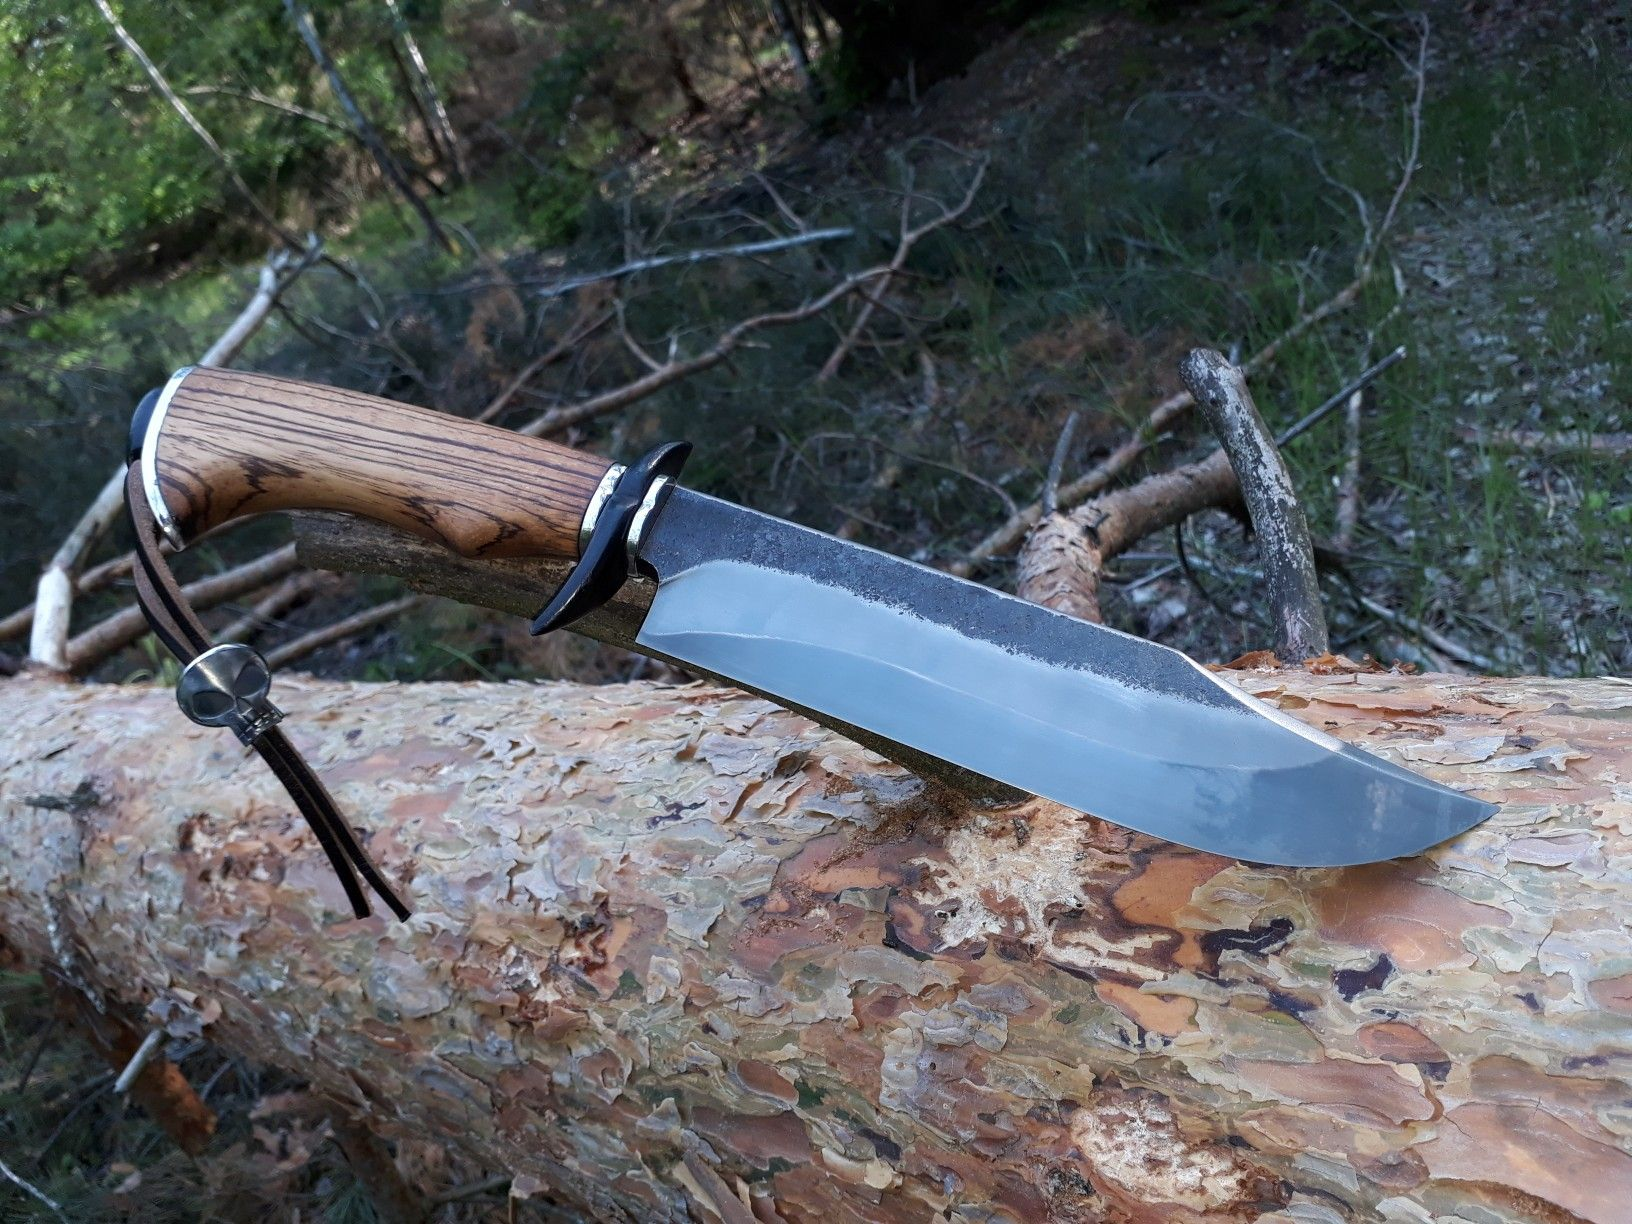 Forged Bowie Knife Hand Forged Knife Bowie Knife Forged Knife